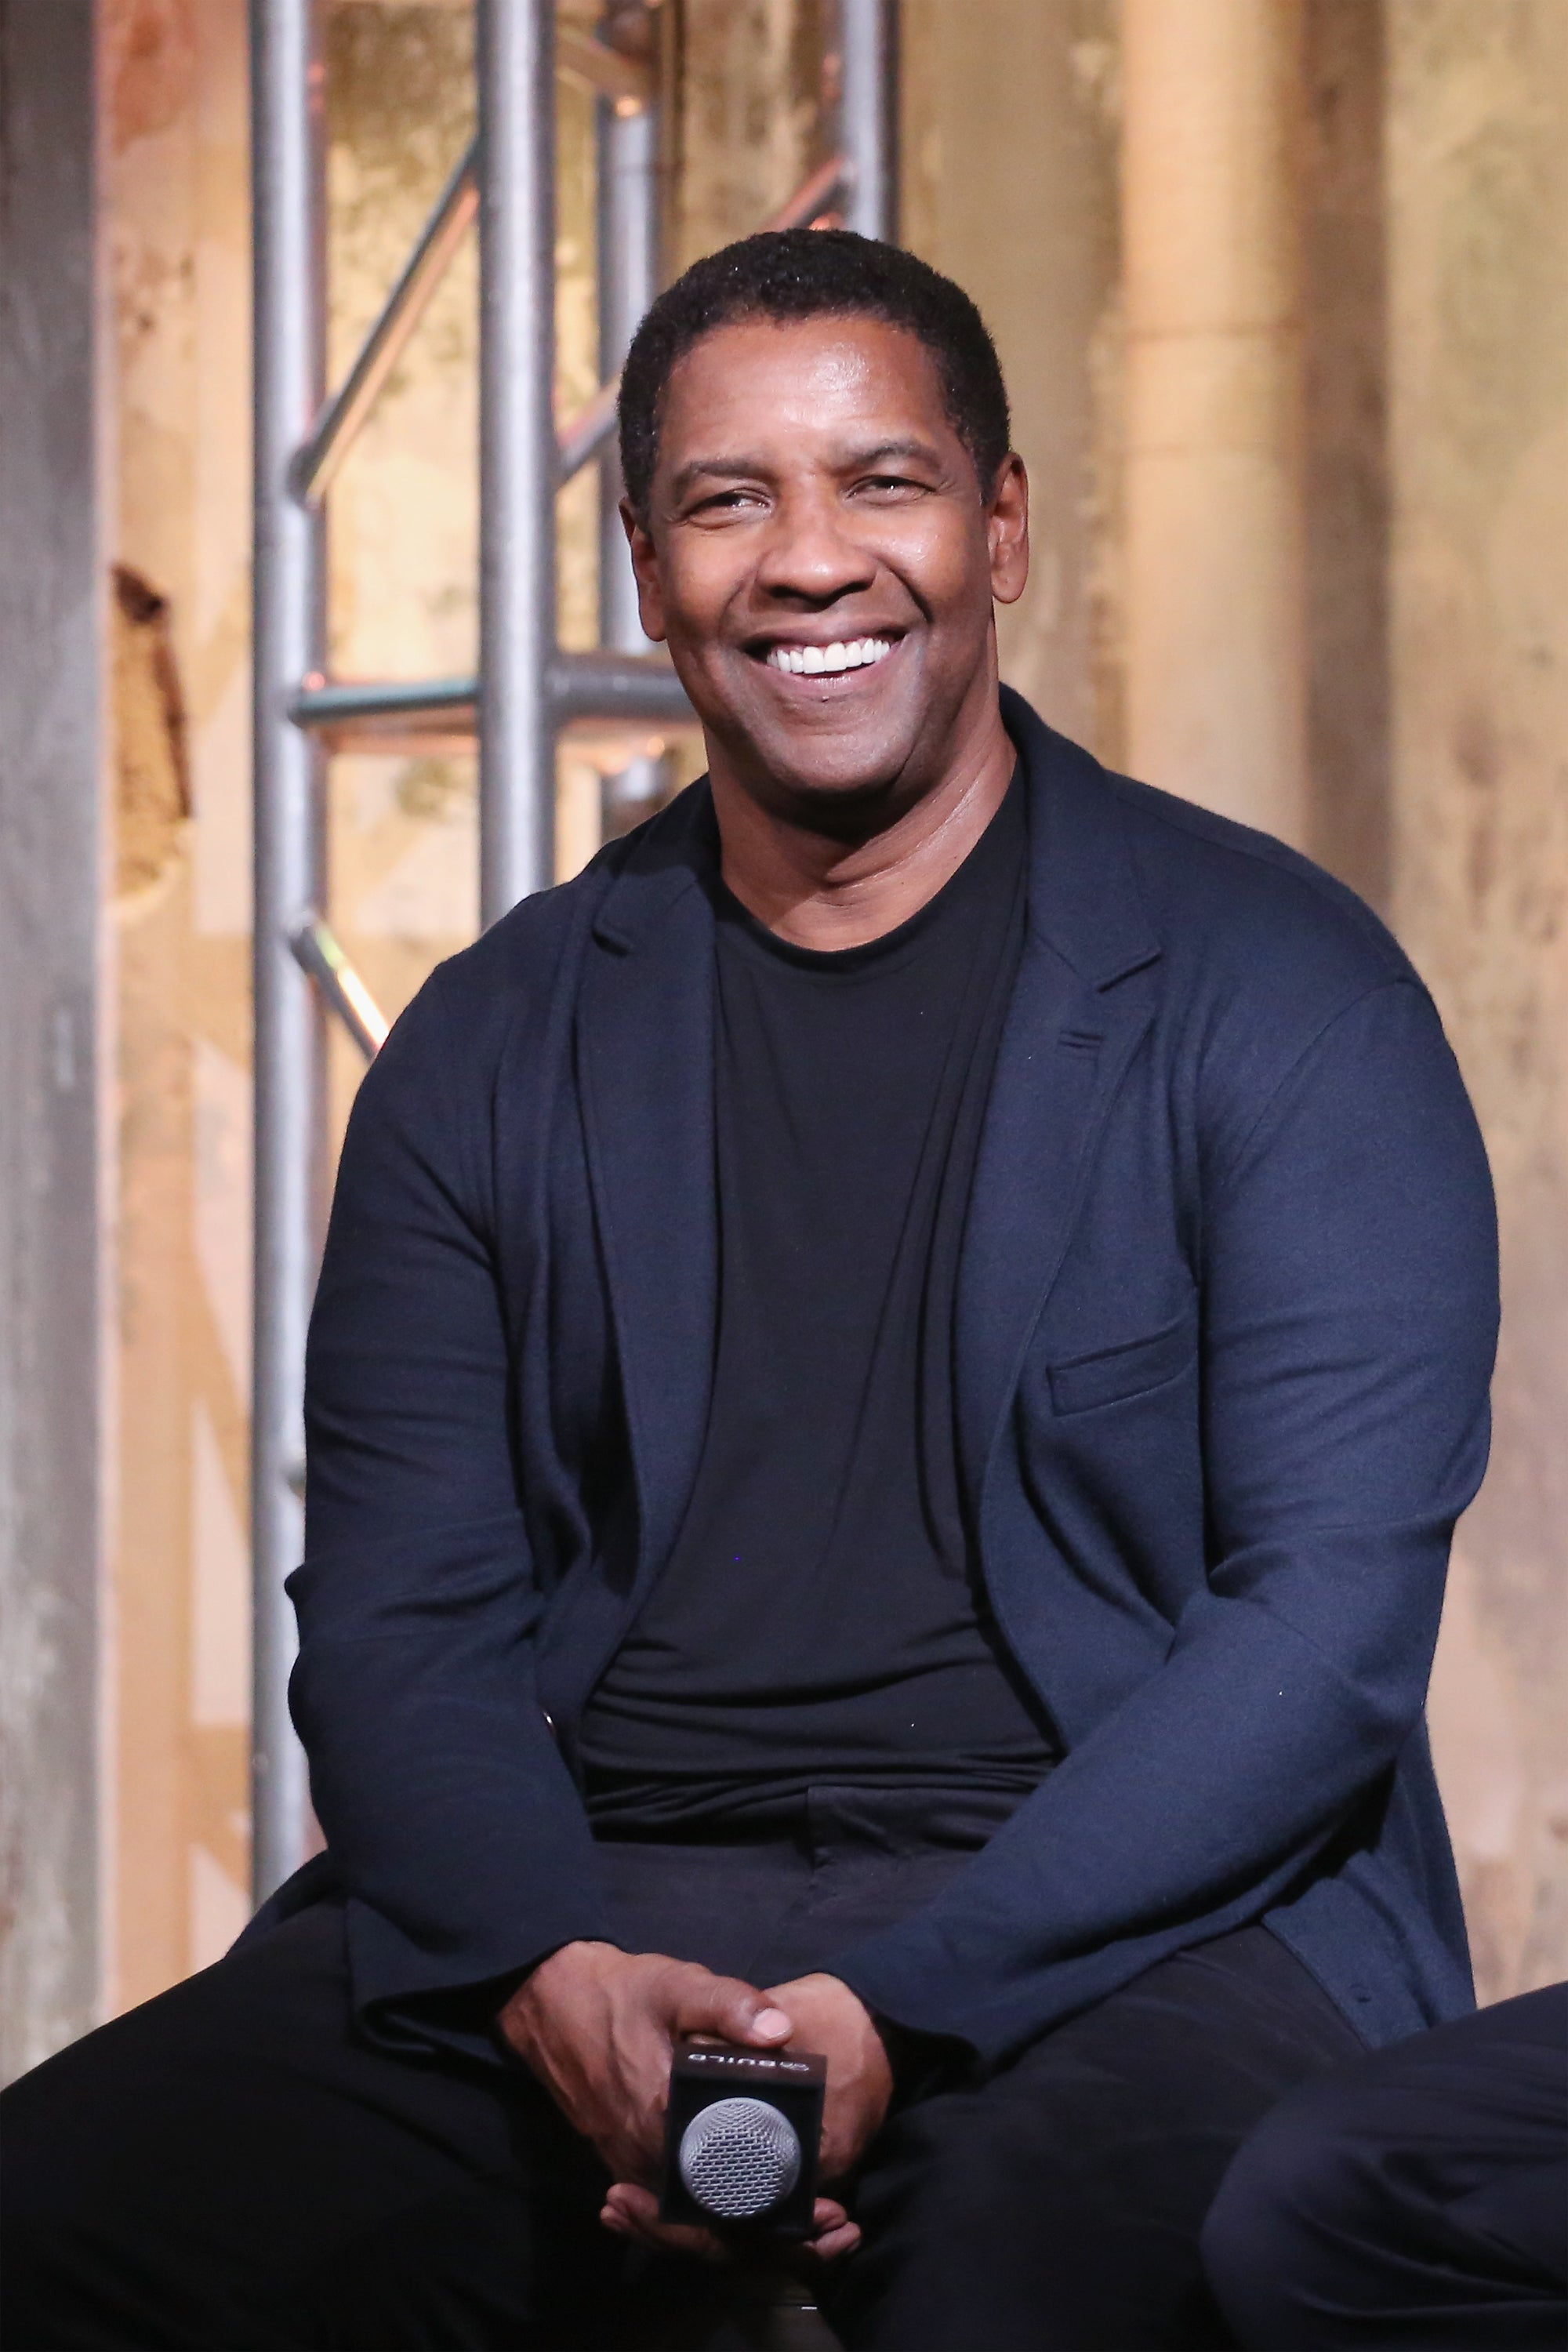 Denzel Washington Returning To Broadway In The Iceman Cometh